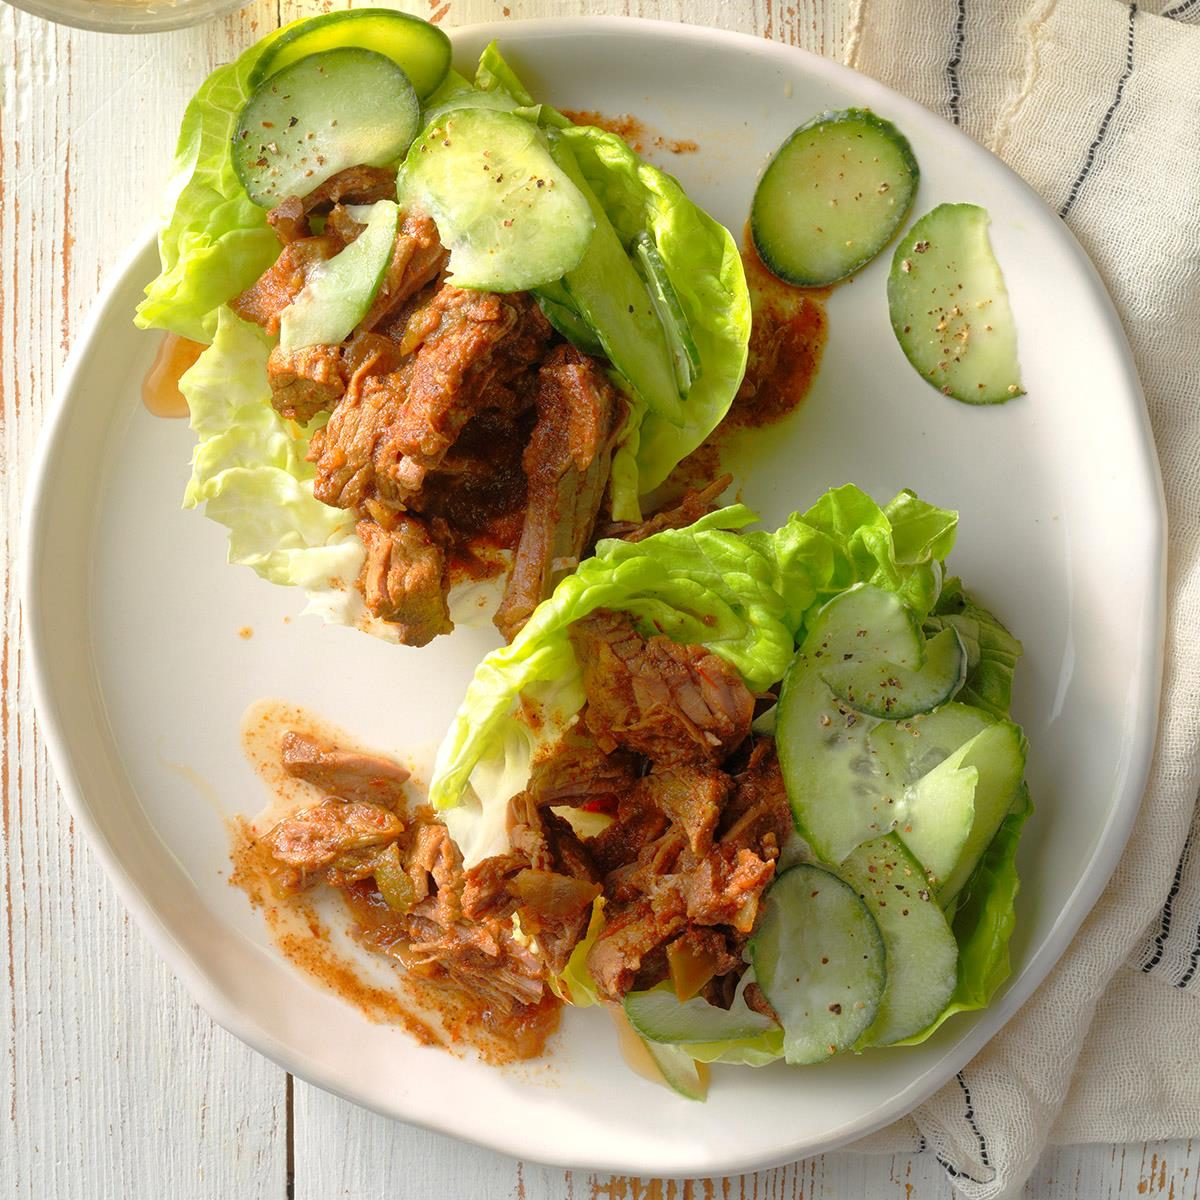 Day 14: Moroccan Lamb Lettuce Wraps